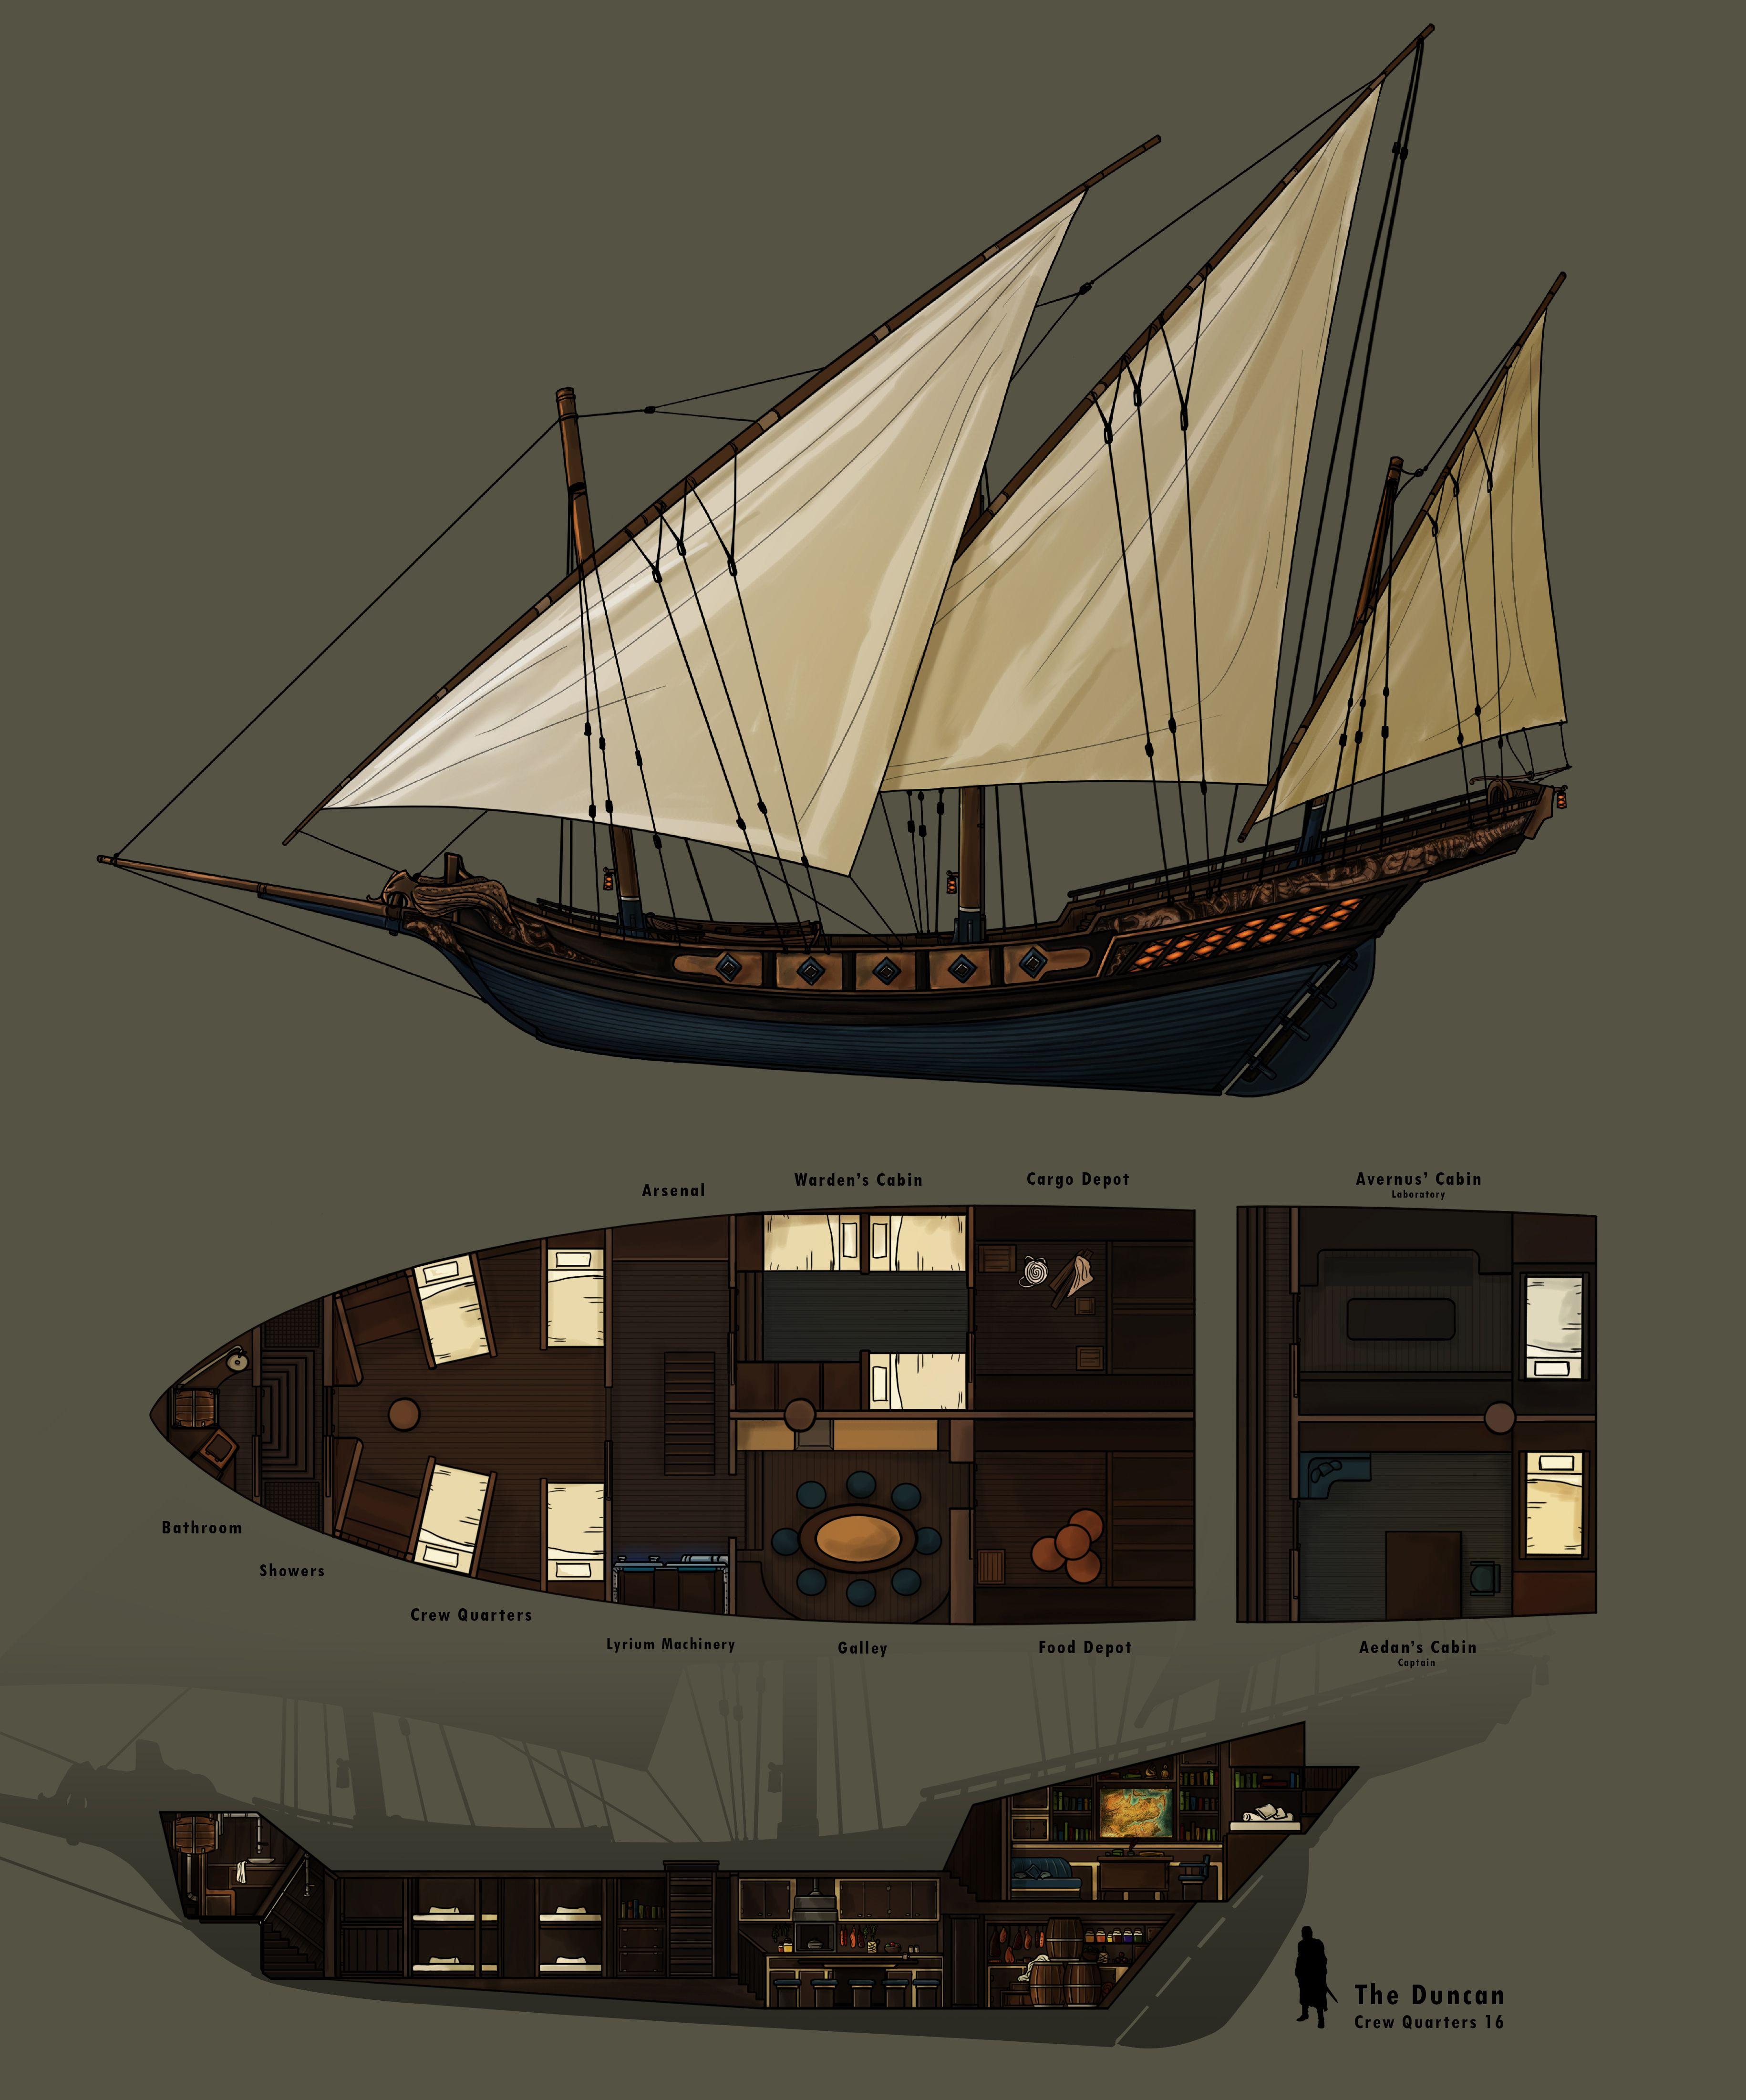 Pin By Aaron Stratton On Deckplans Ship Maps Pinterest Rpg Sailing Diagrams Map Wooden Of The Line Dungeon Ships